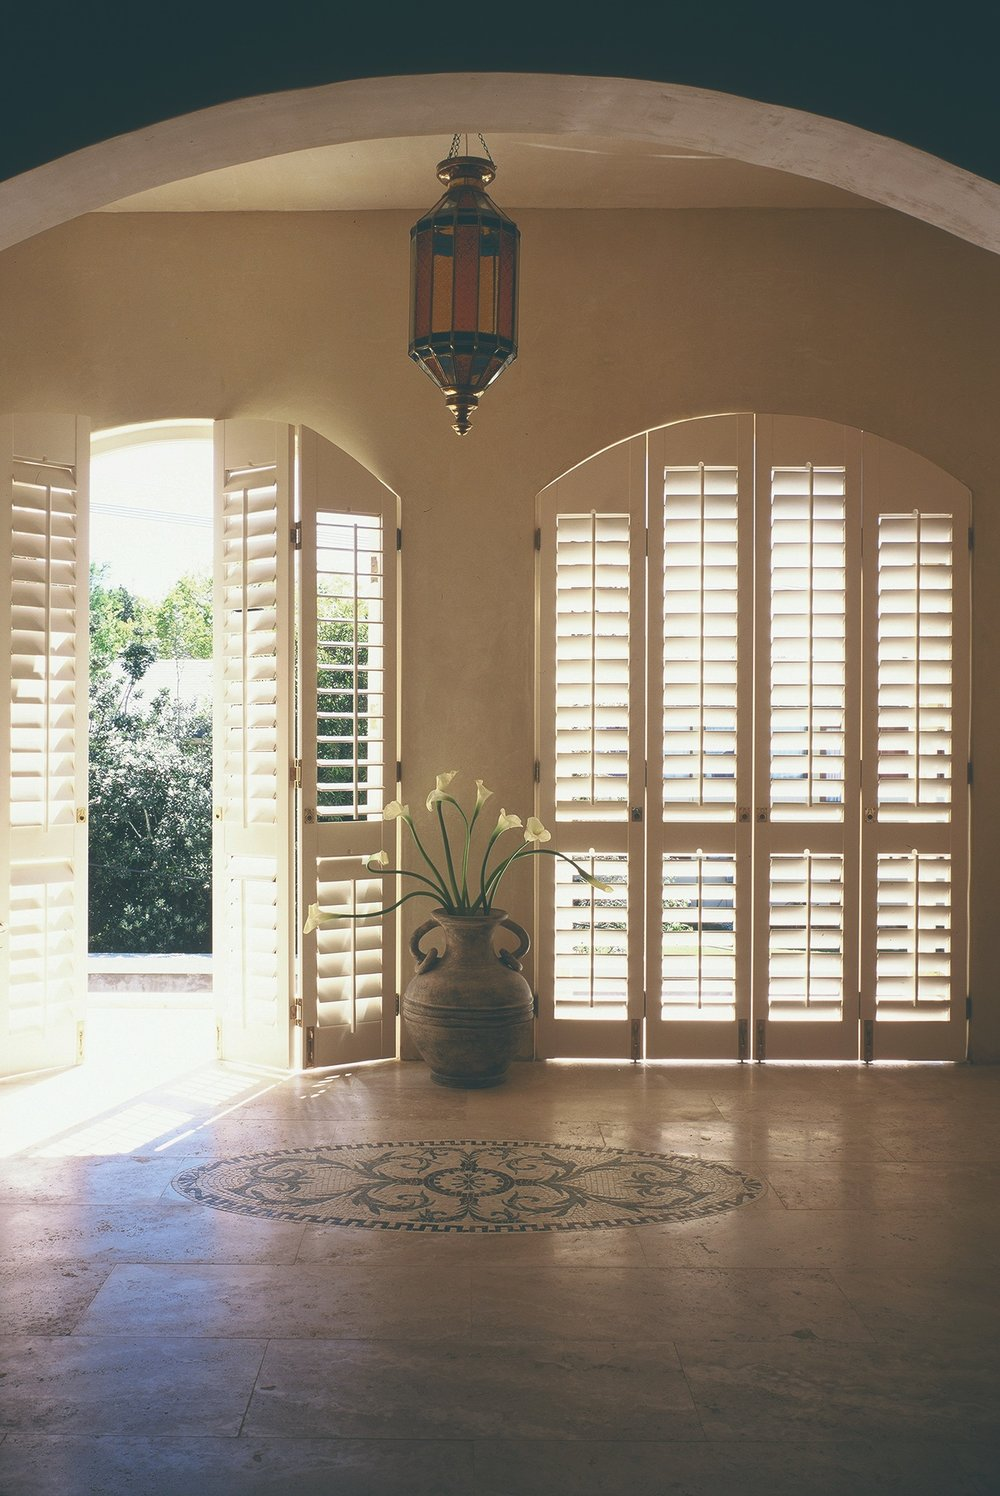 Shutters - add beauty and value